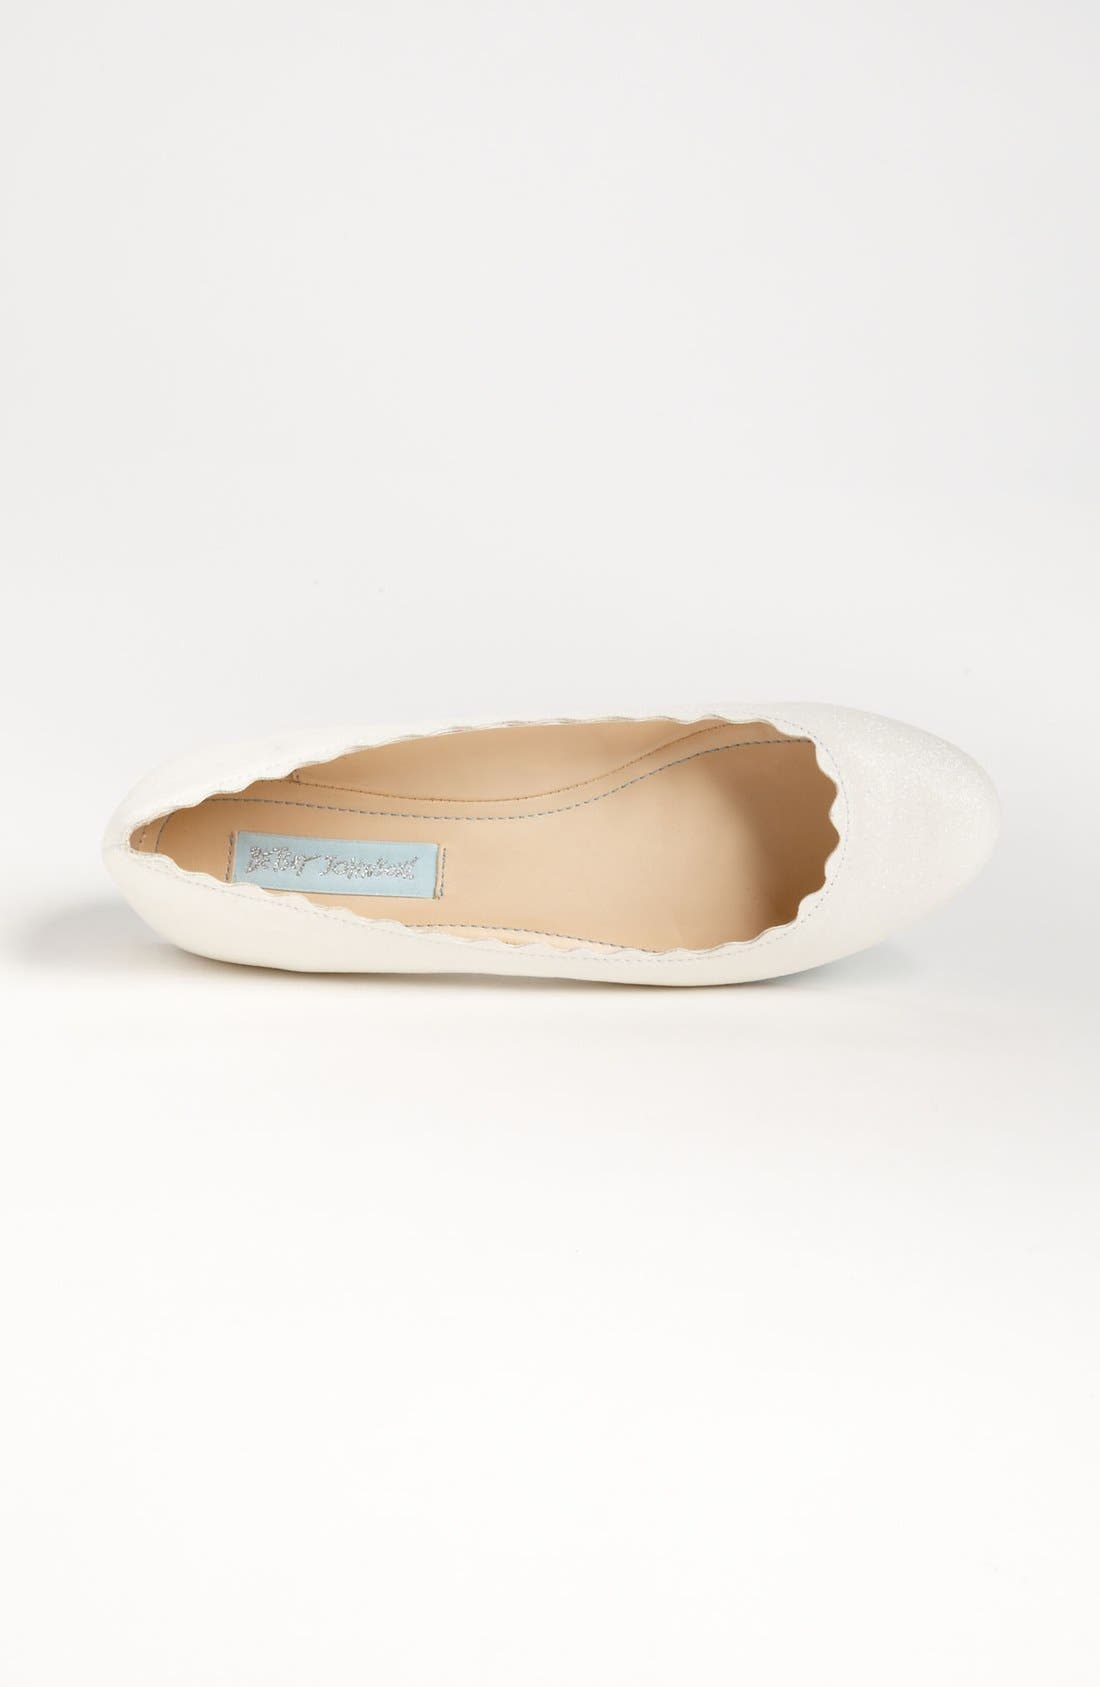 Alternate Image 3  - Blue by Betsey Johnson 'Dance' Flat